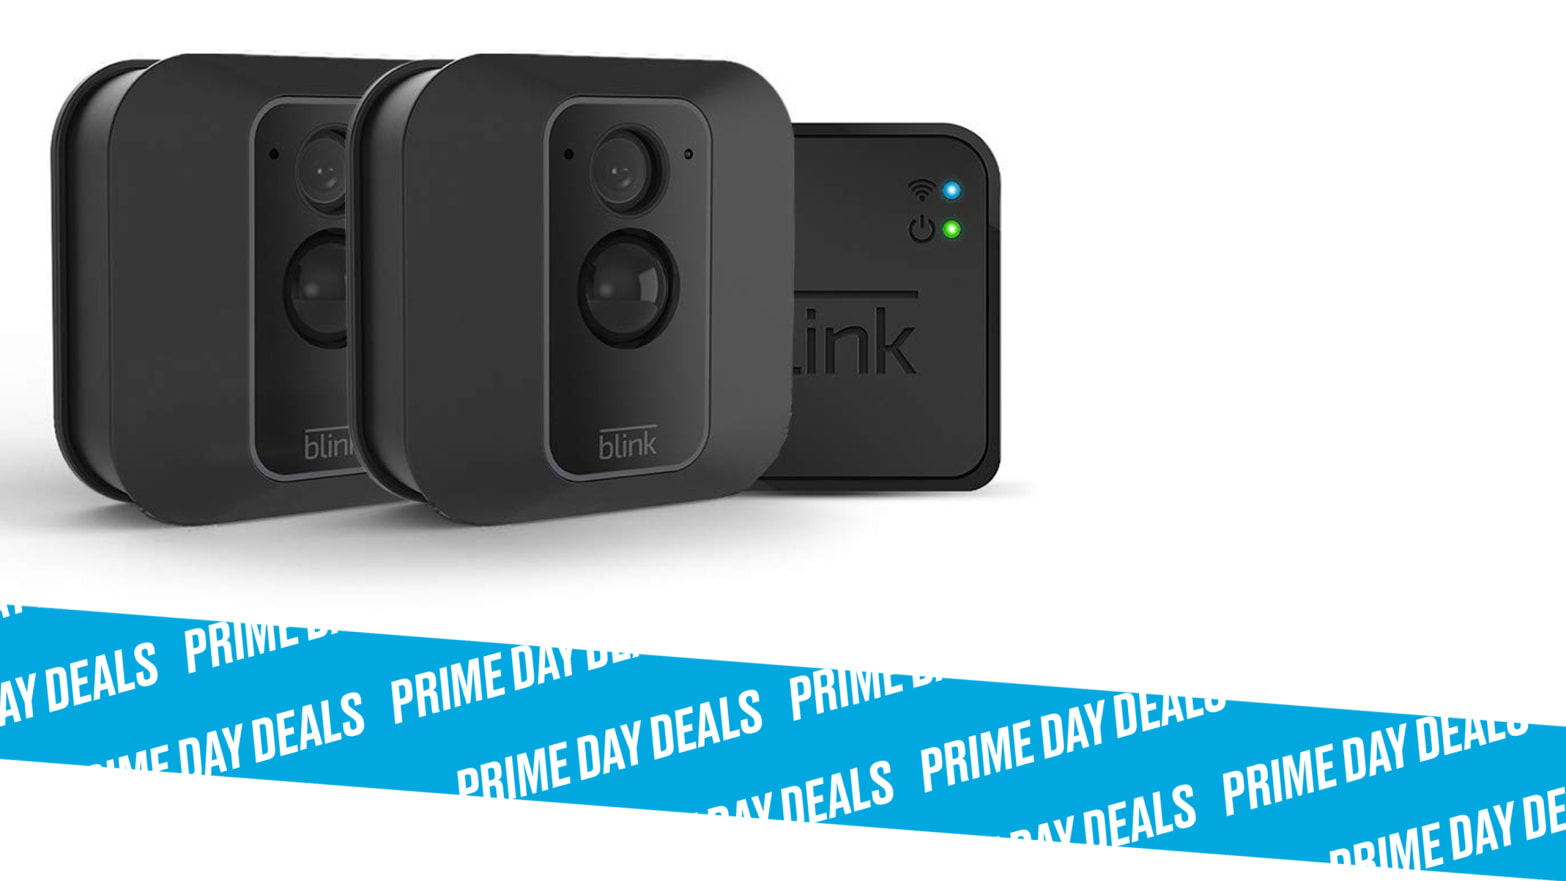 The Blink XT2 Smart Security Camera Is Nearly Half Off During Prime Day